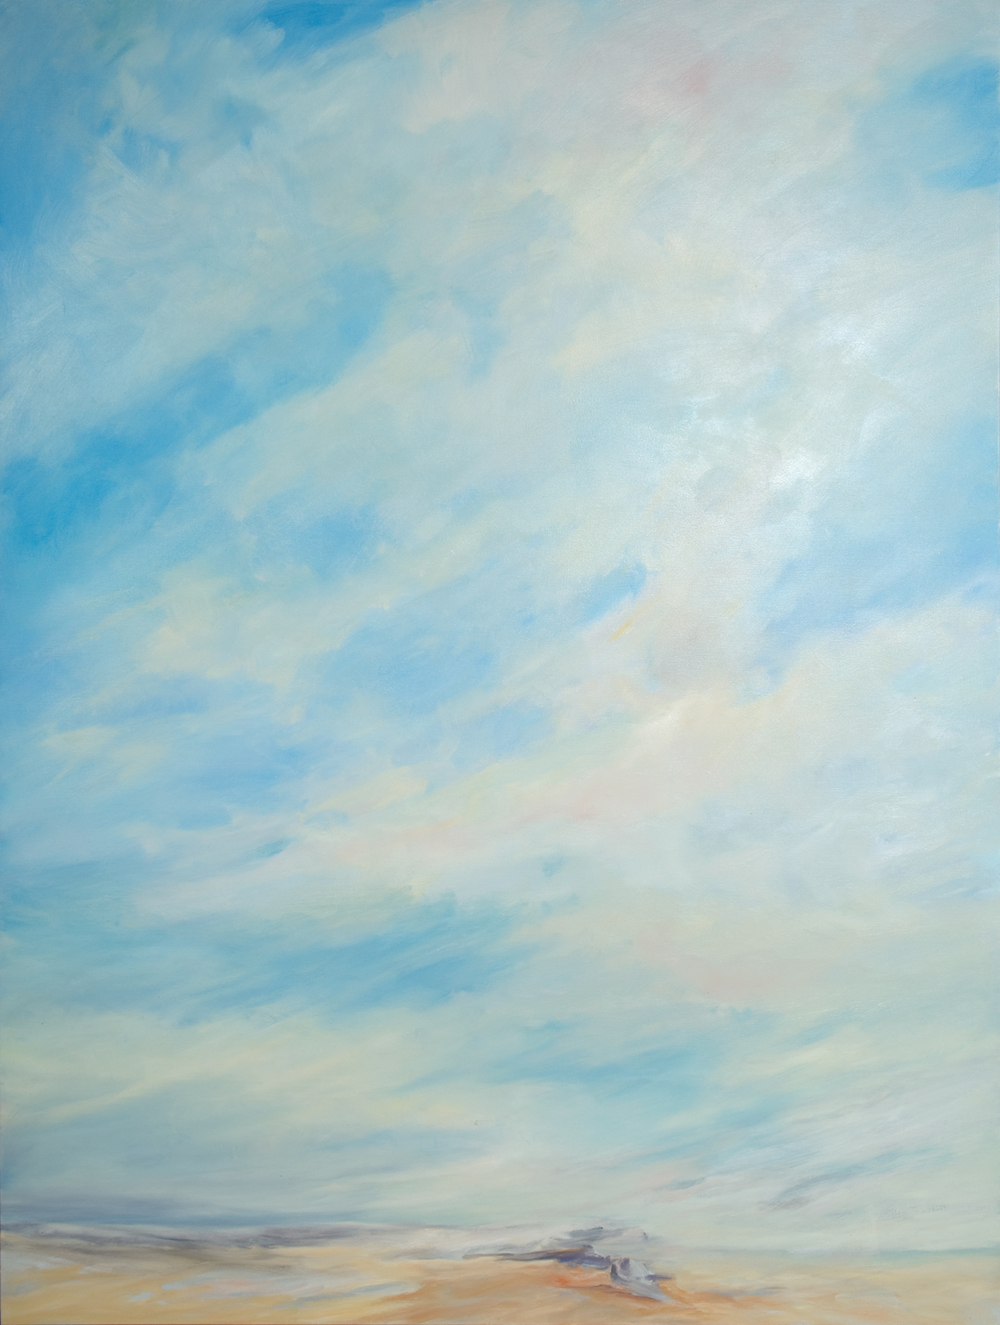 Winter Afternoon Sky, 2009, Oil on Canvas, 72 x 54 inches (Private Collection)